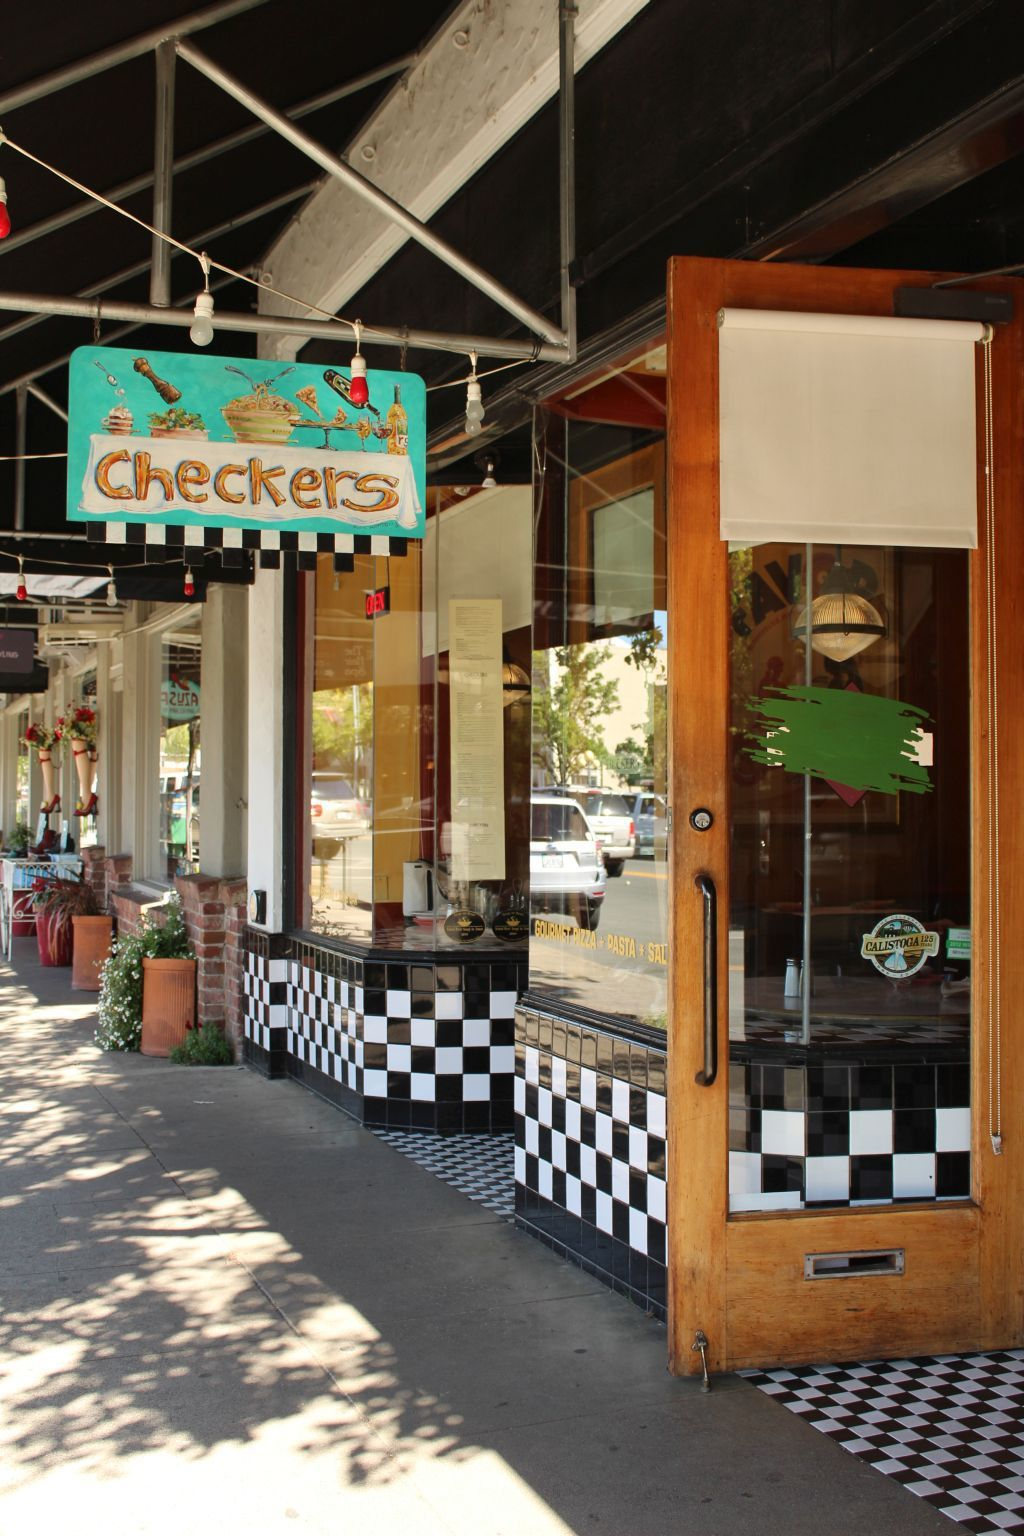 Checkers Restaurant in Calistoga